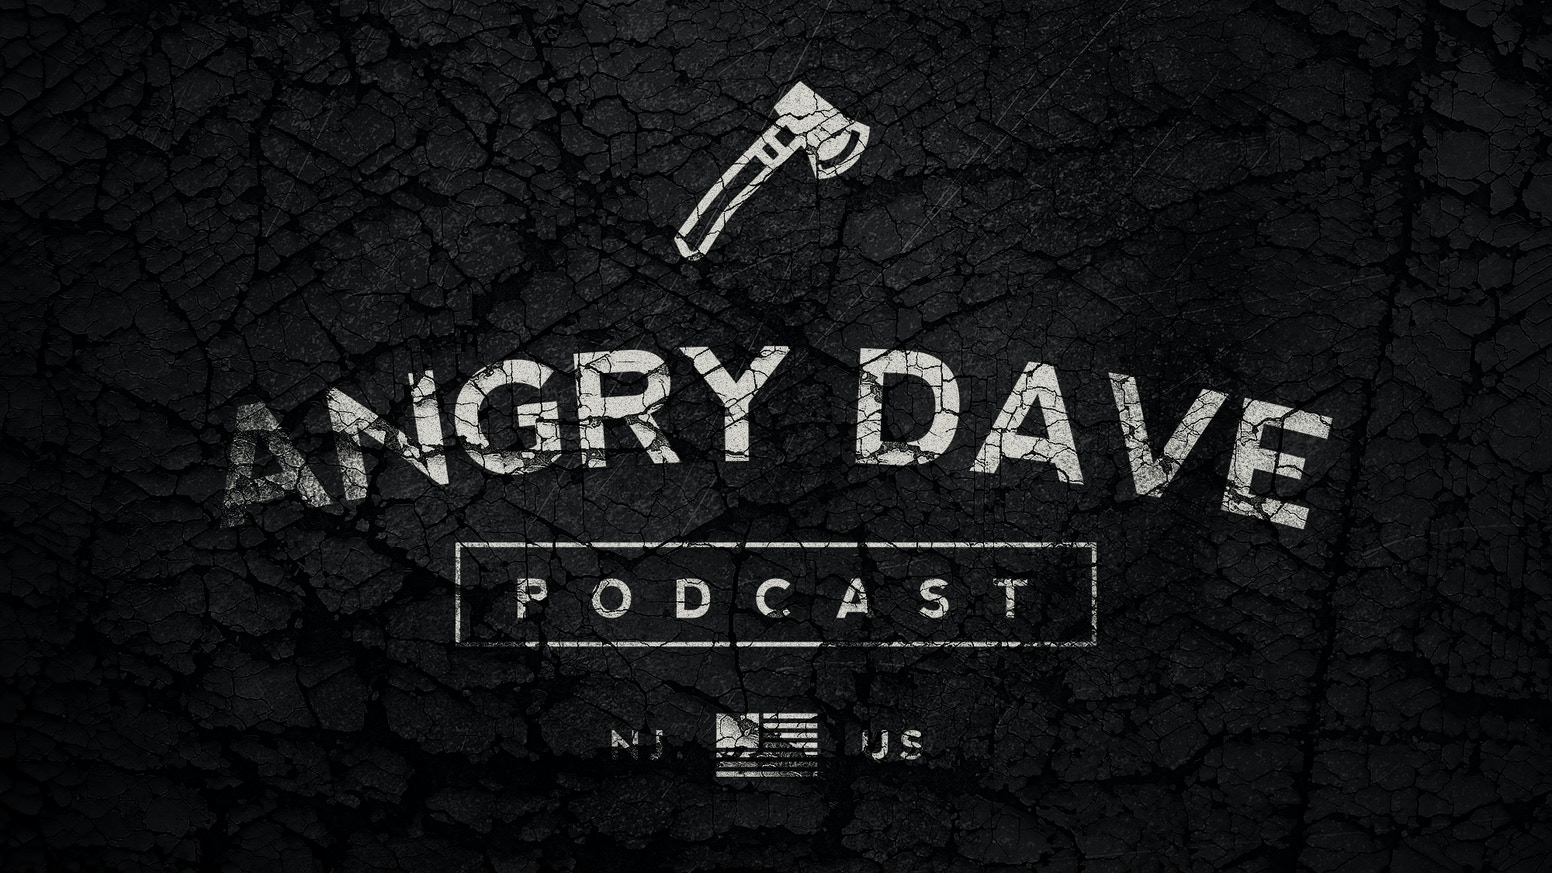 He's been called angry, outspoken, controversial and profane, but almost always funny. He's Angry Dave and he's ready to talk.